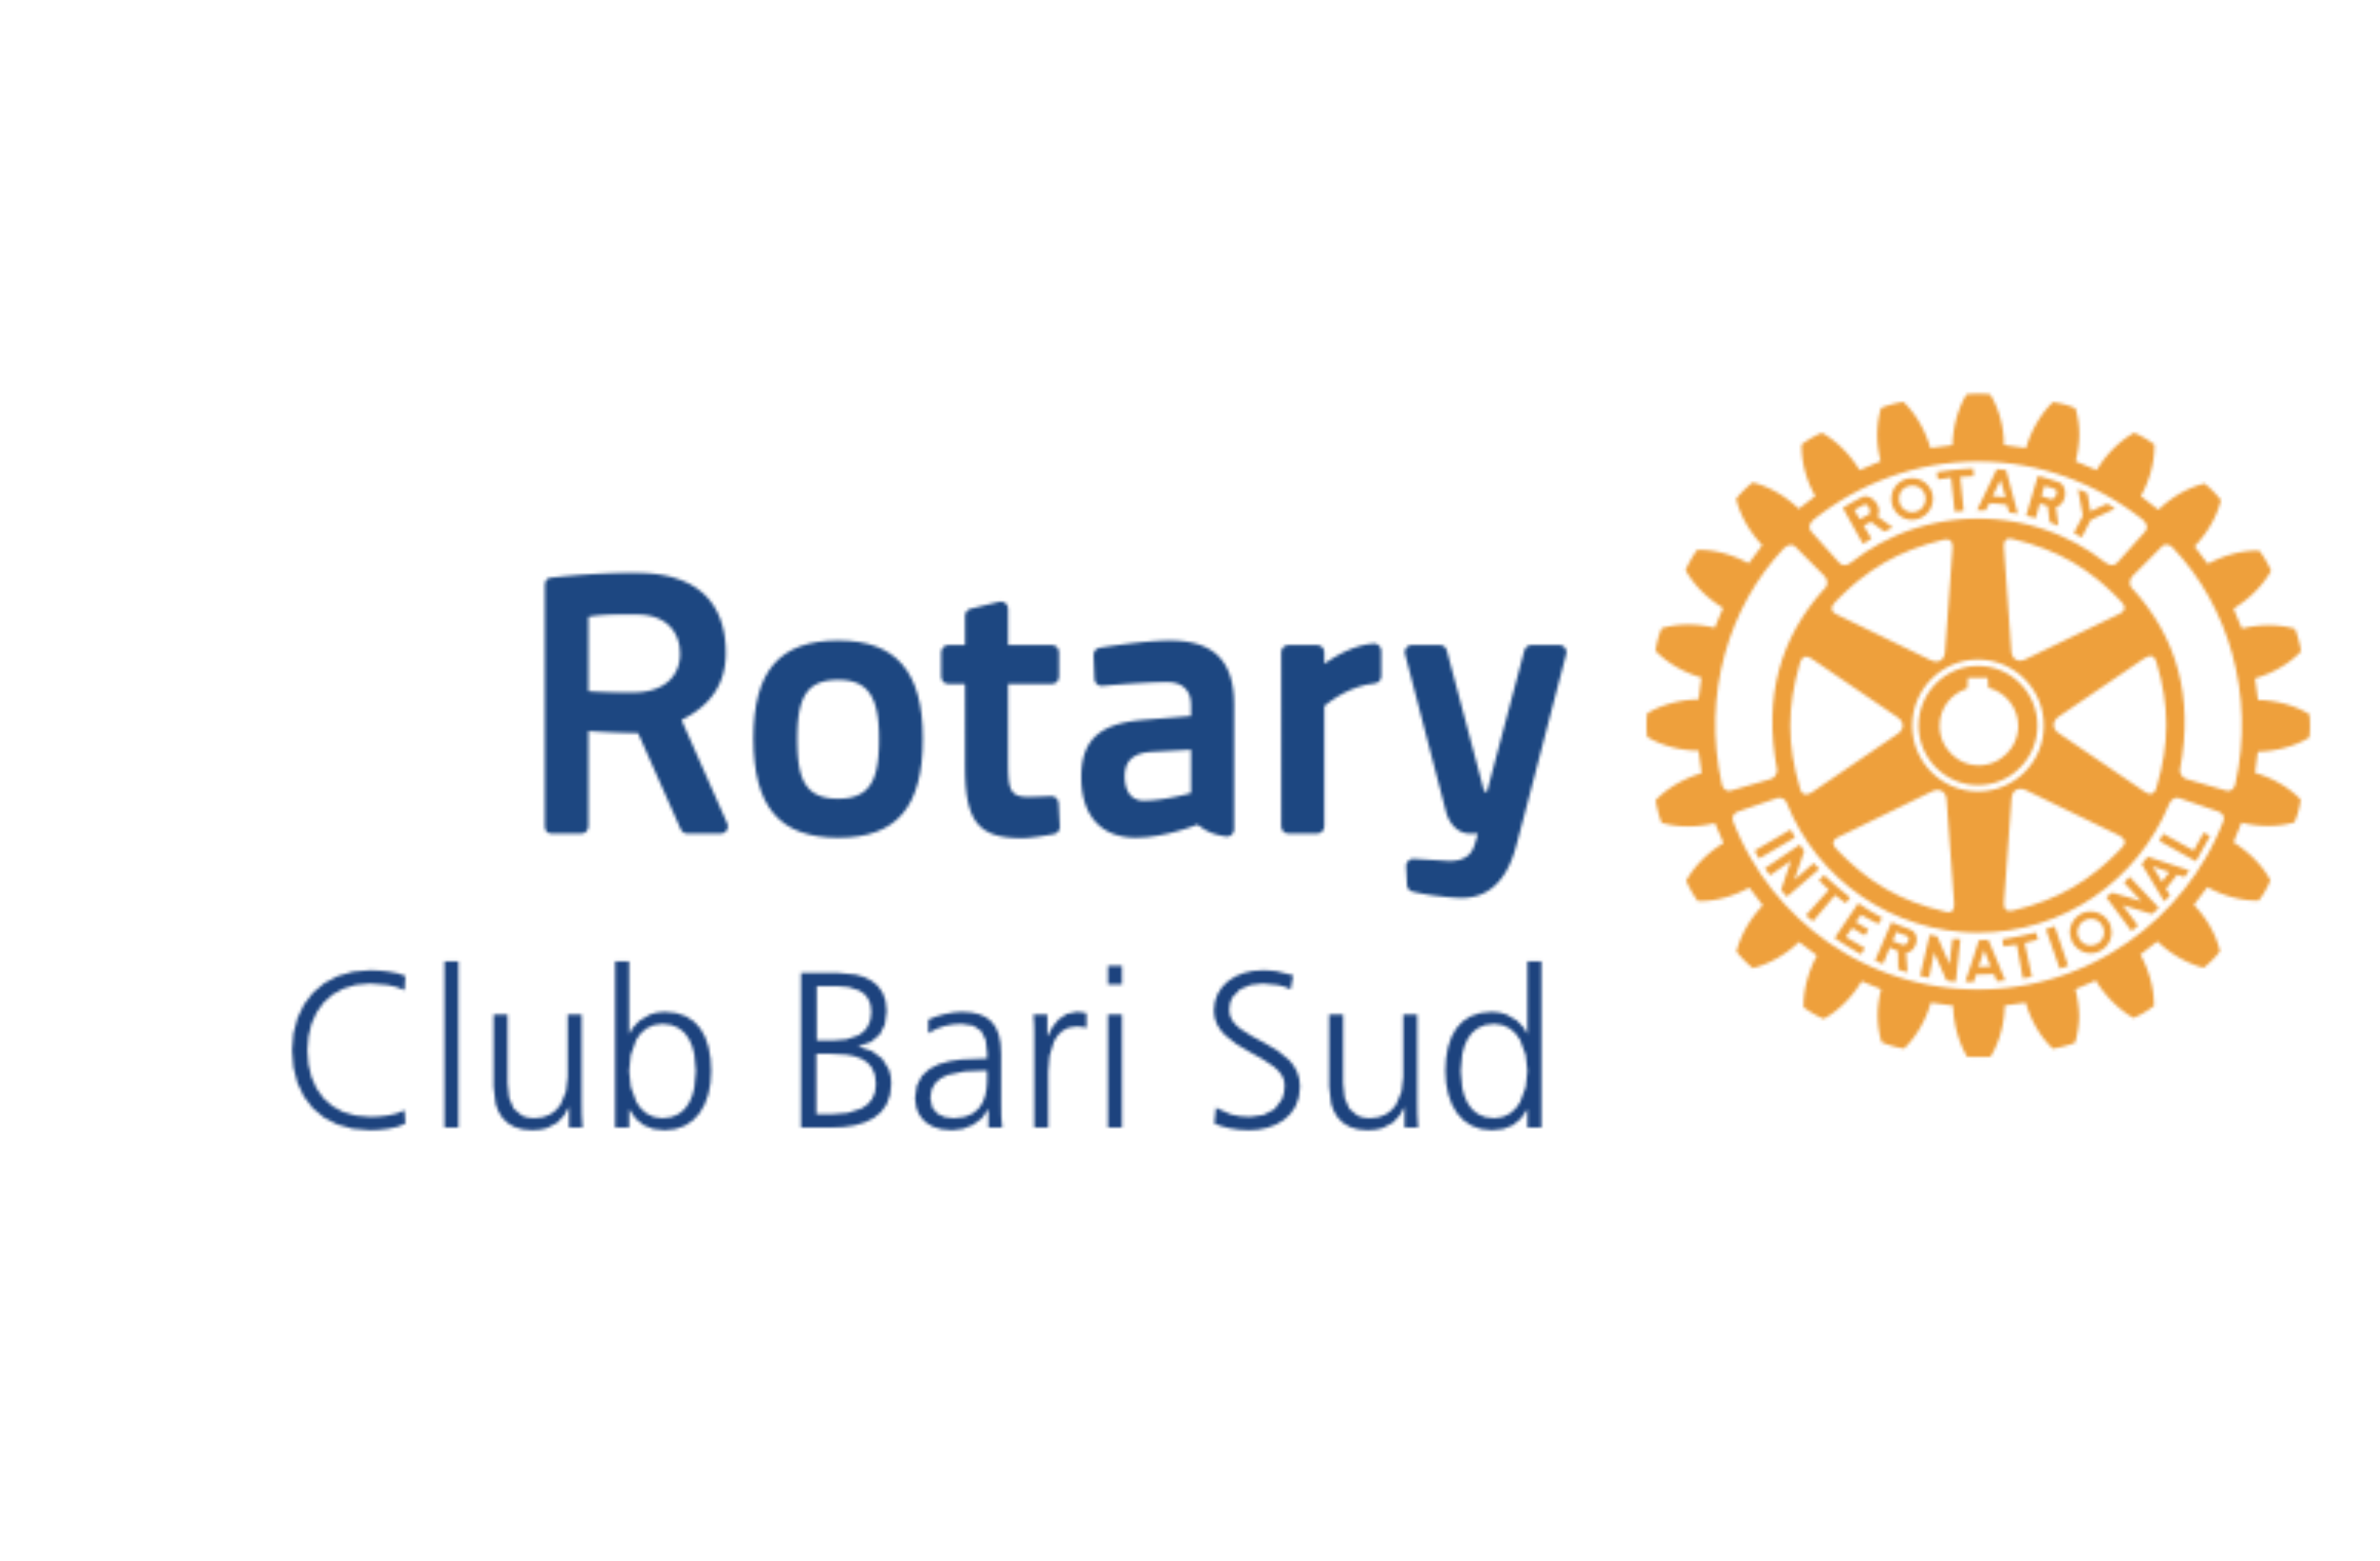 logo rotary piano strategico